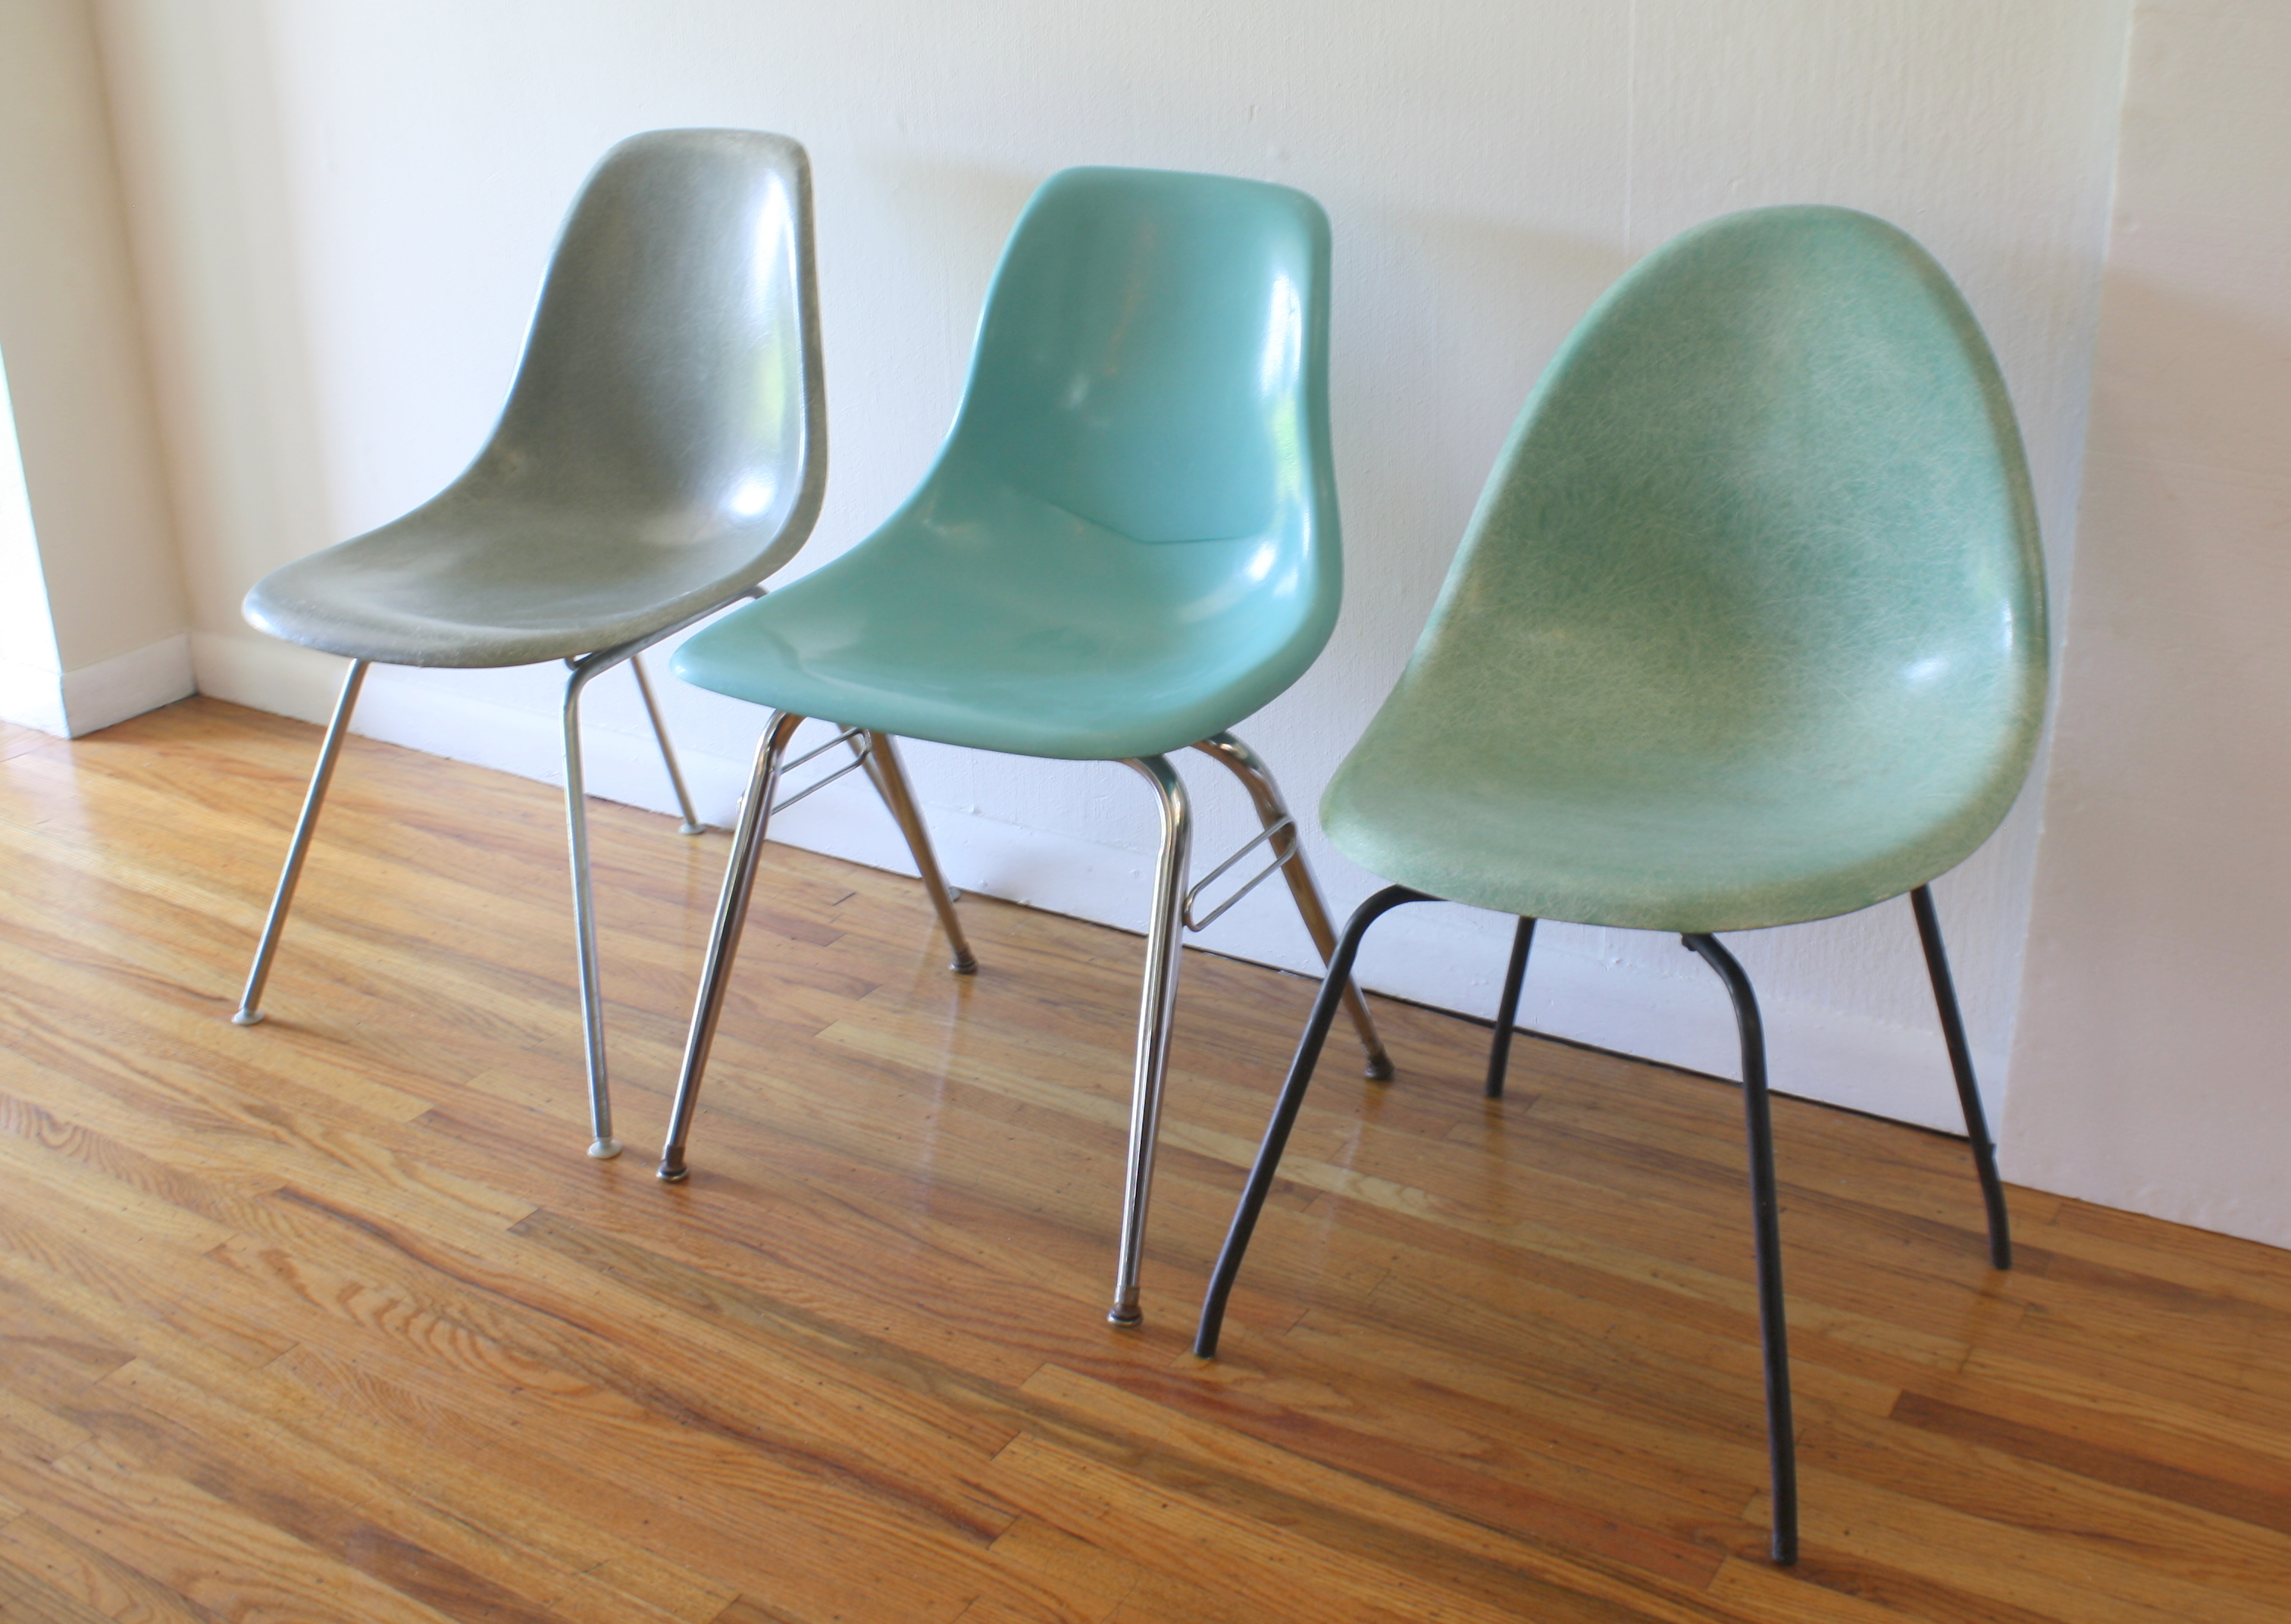 trio of shell chairs 2